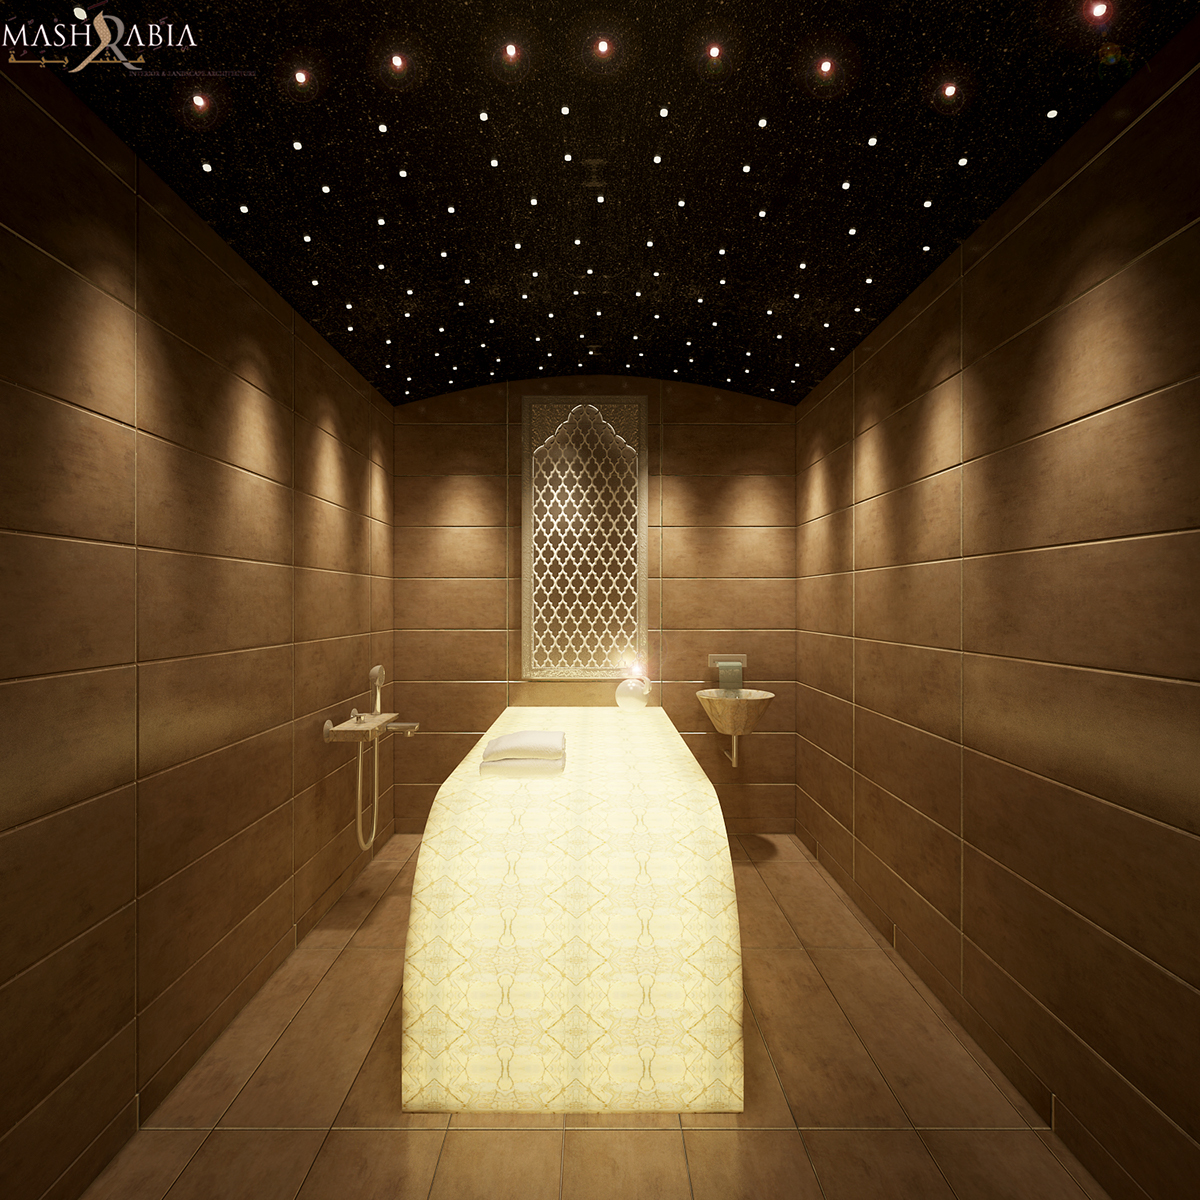 Mind sense spa dubai on behance for 7 shades salon dubai